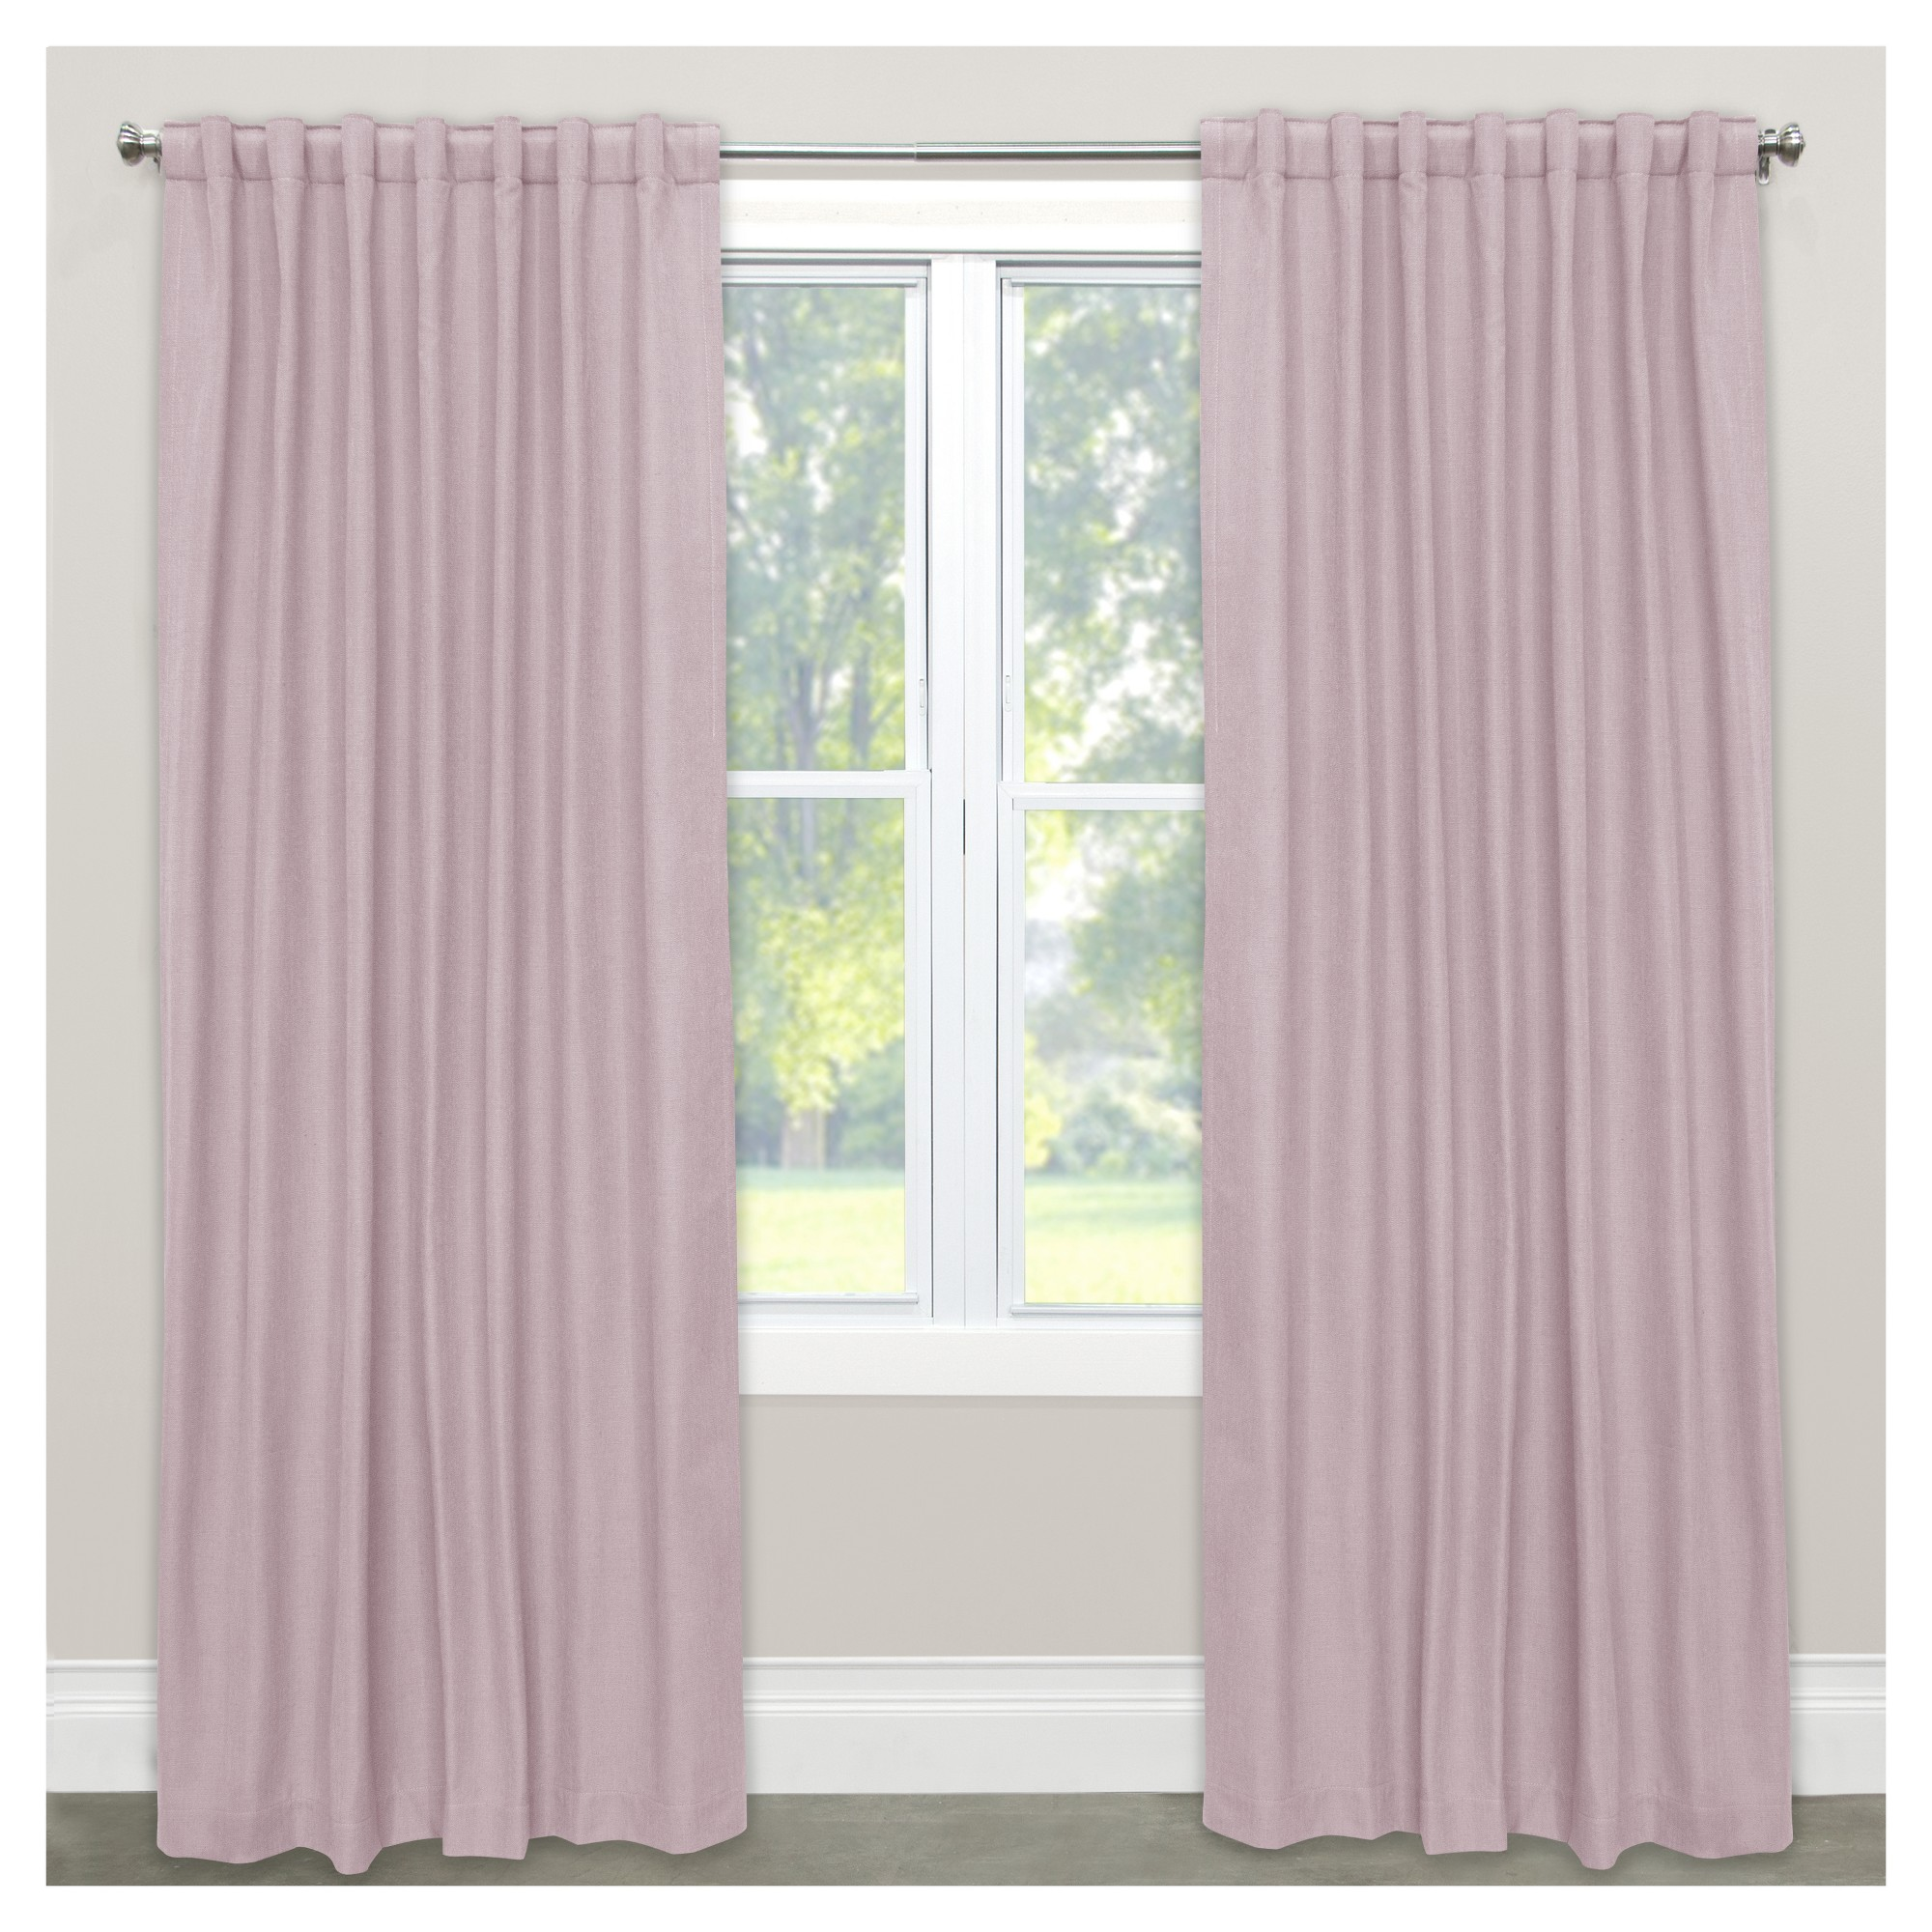 ideas brooklyn linen grey grommet in design veratex rods colorblock of beyond bed bath and panel coolest blackout curtain window shower curtains dark